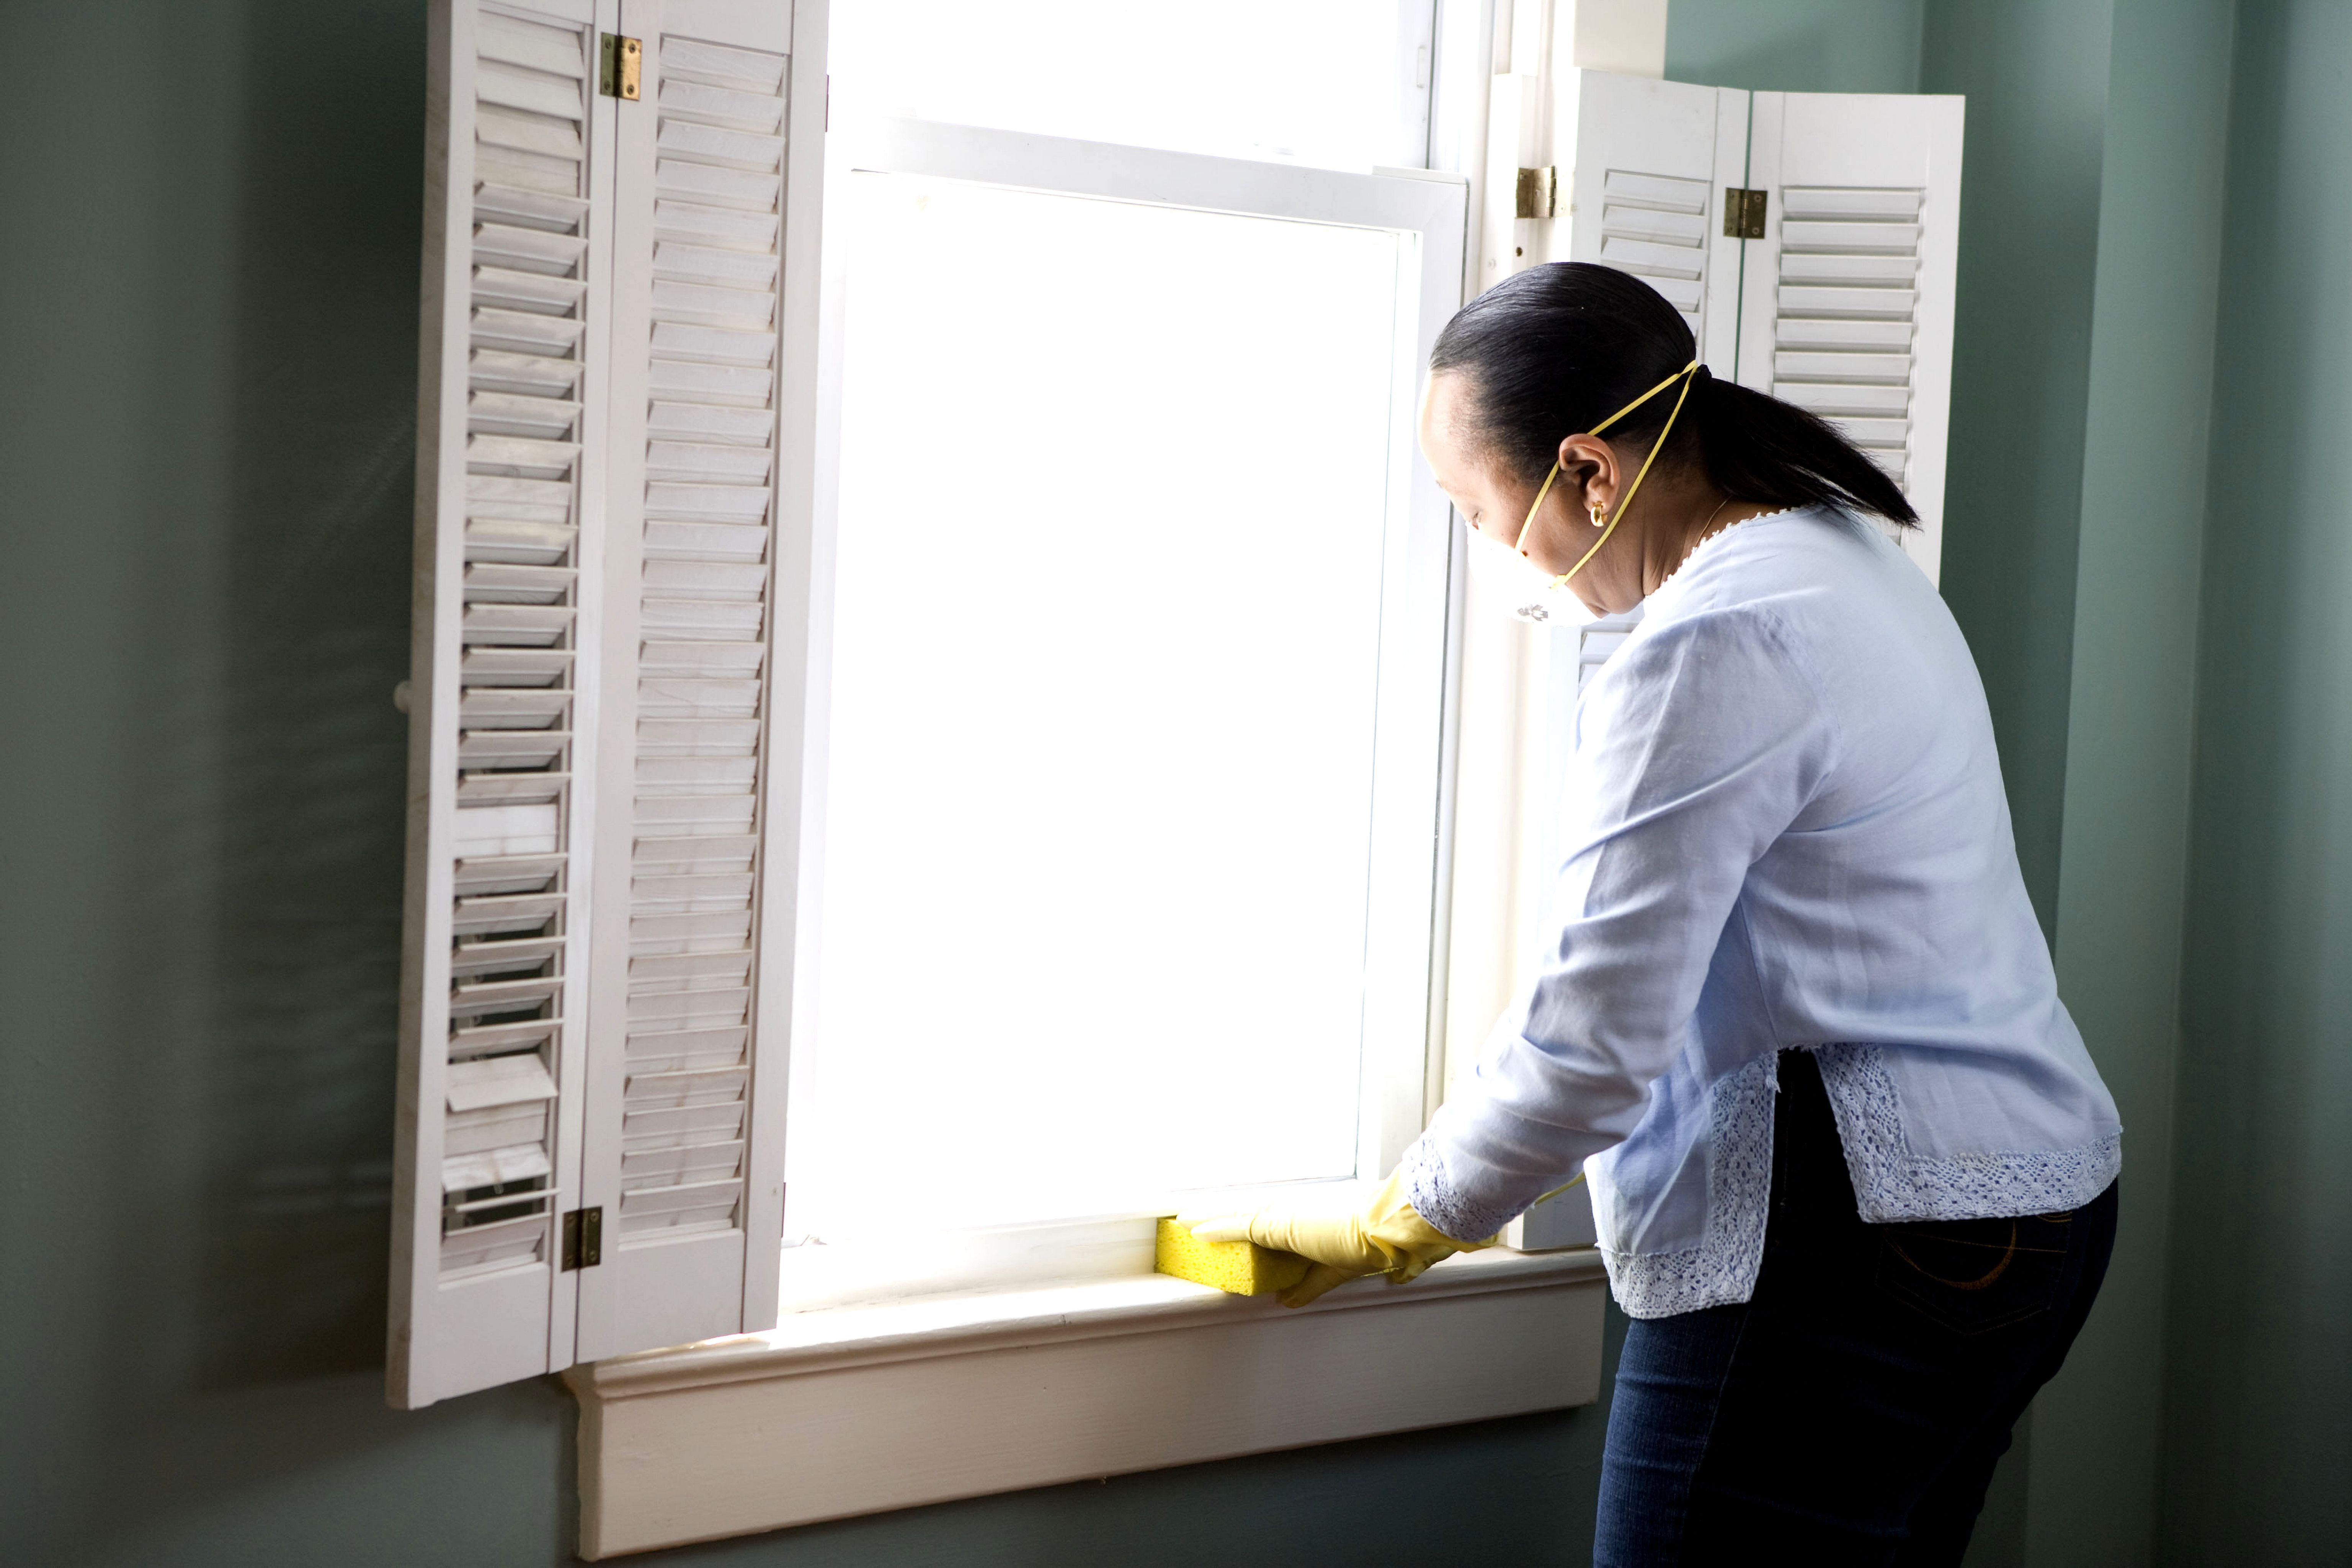 kitchen cleaning corner cabinet shelf free picture: african american, woman, preparing, window ...